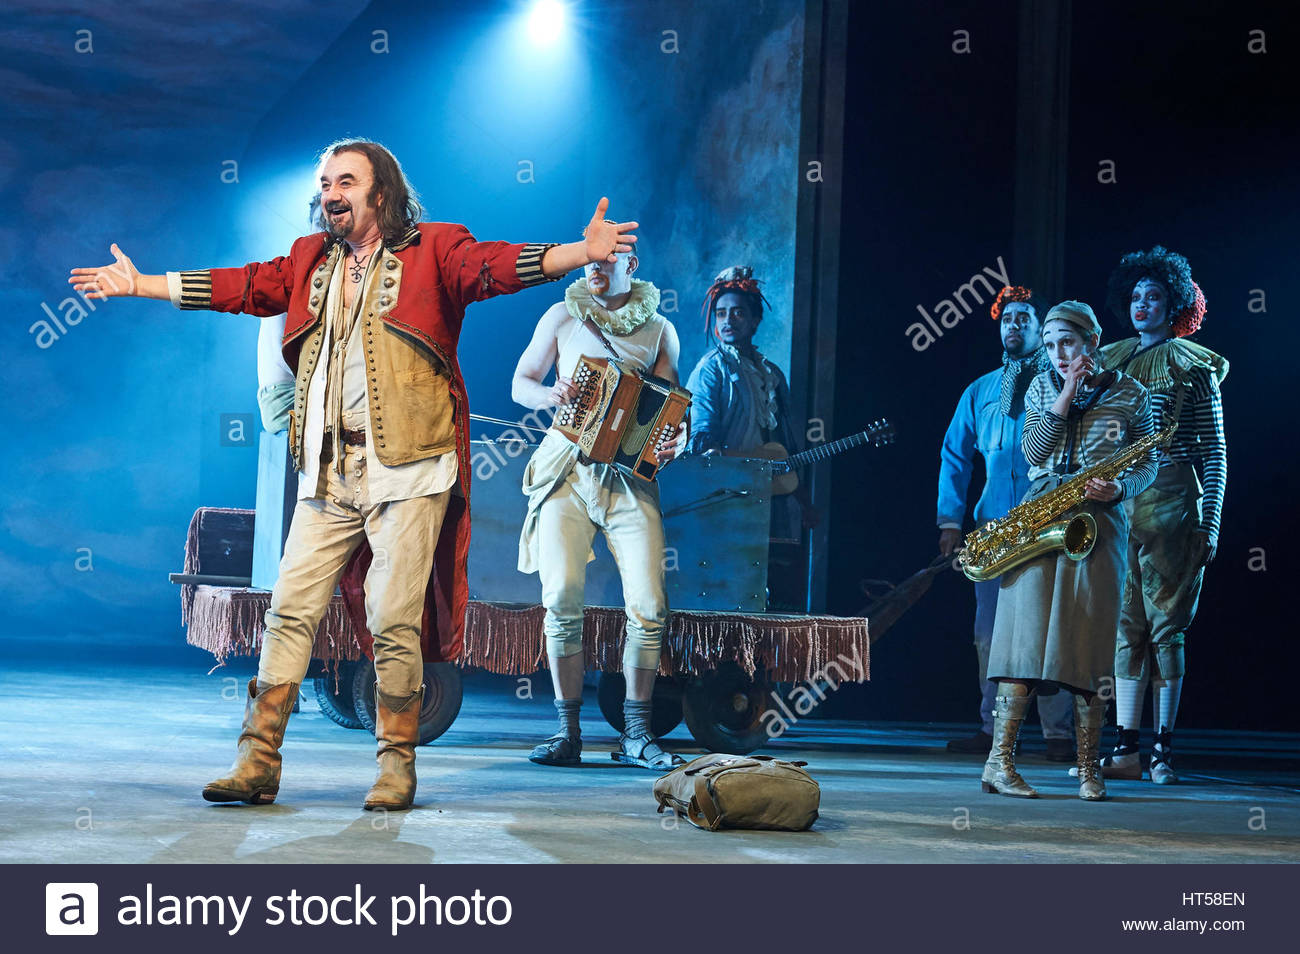 Rosencrantz and Guildenstern by Tom Stoppard, directed by David Leveaux. With David Haig as The Player. Opens at - Stock Image